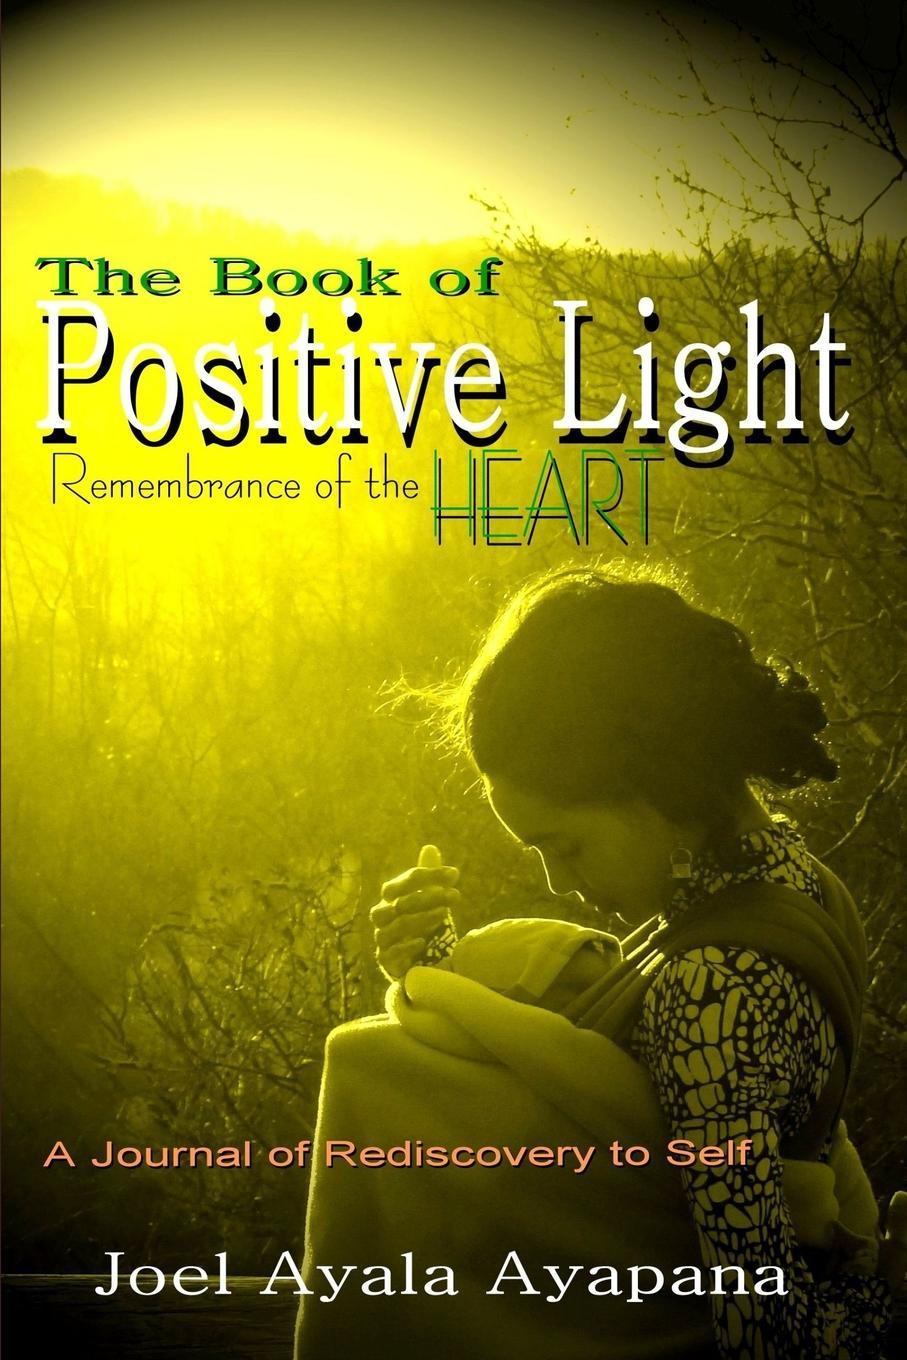 цена Joel Ayapana The Book of Positive Light. Remembrance of the Heart (Paper Back) онлайн в 2017 году